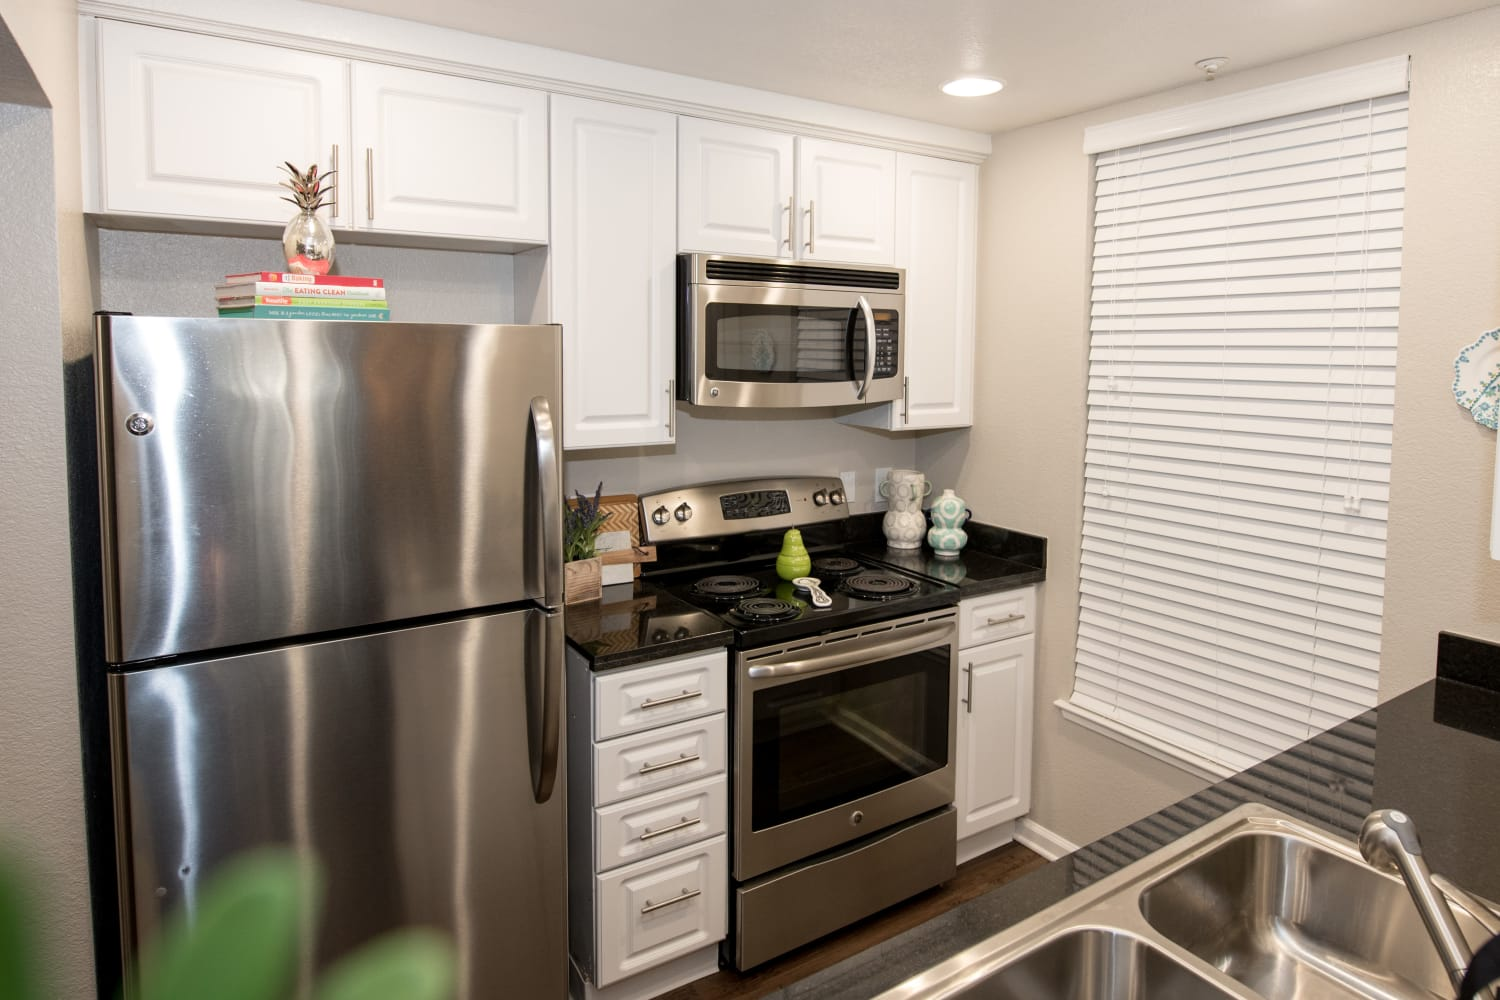 Upgraded appliances at Nantucket Apartments in Santa Clara, California